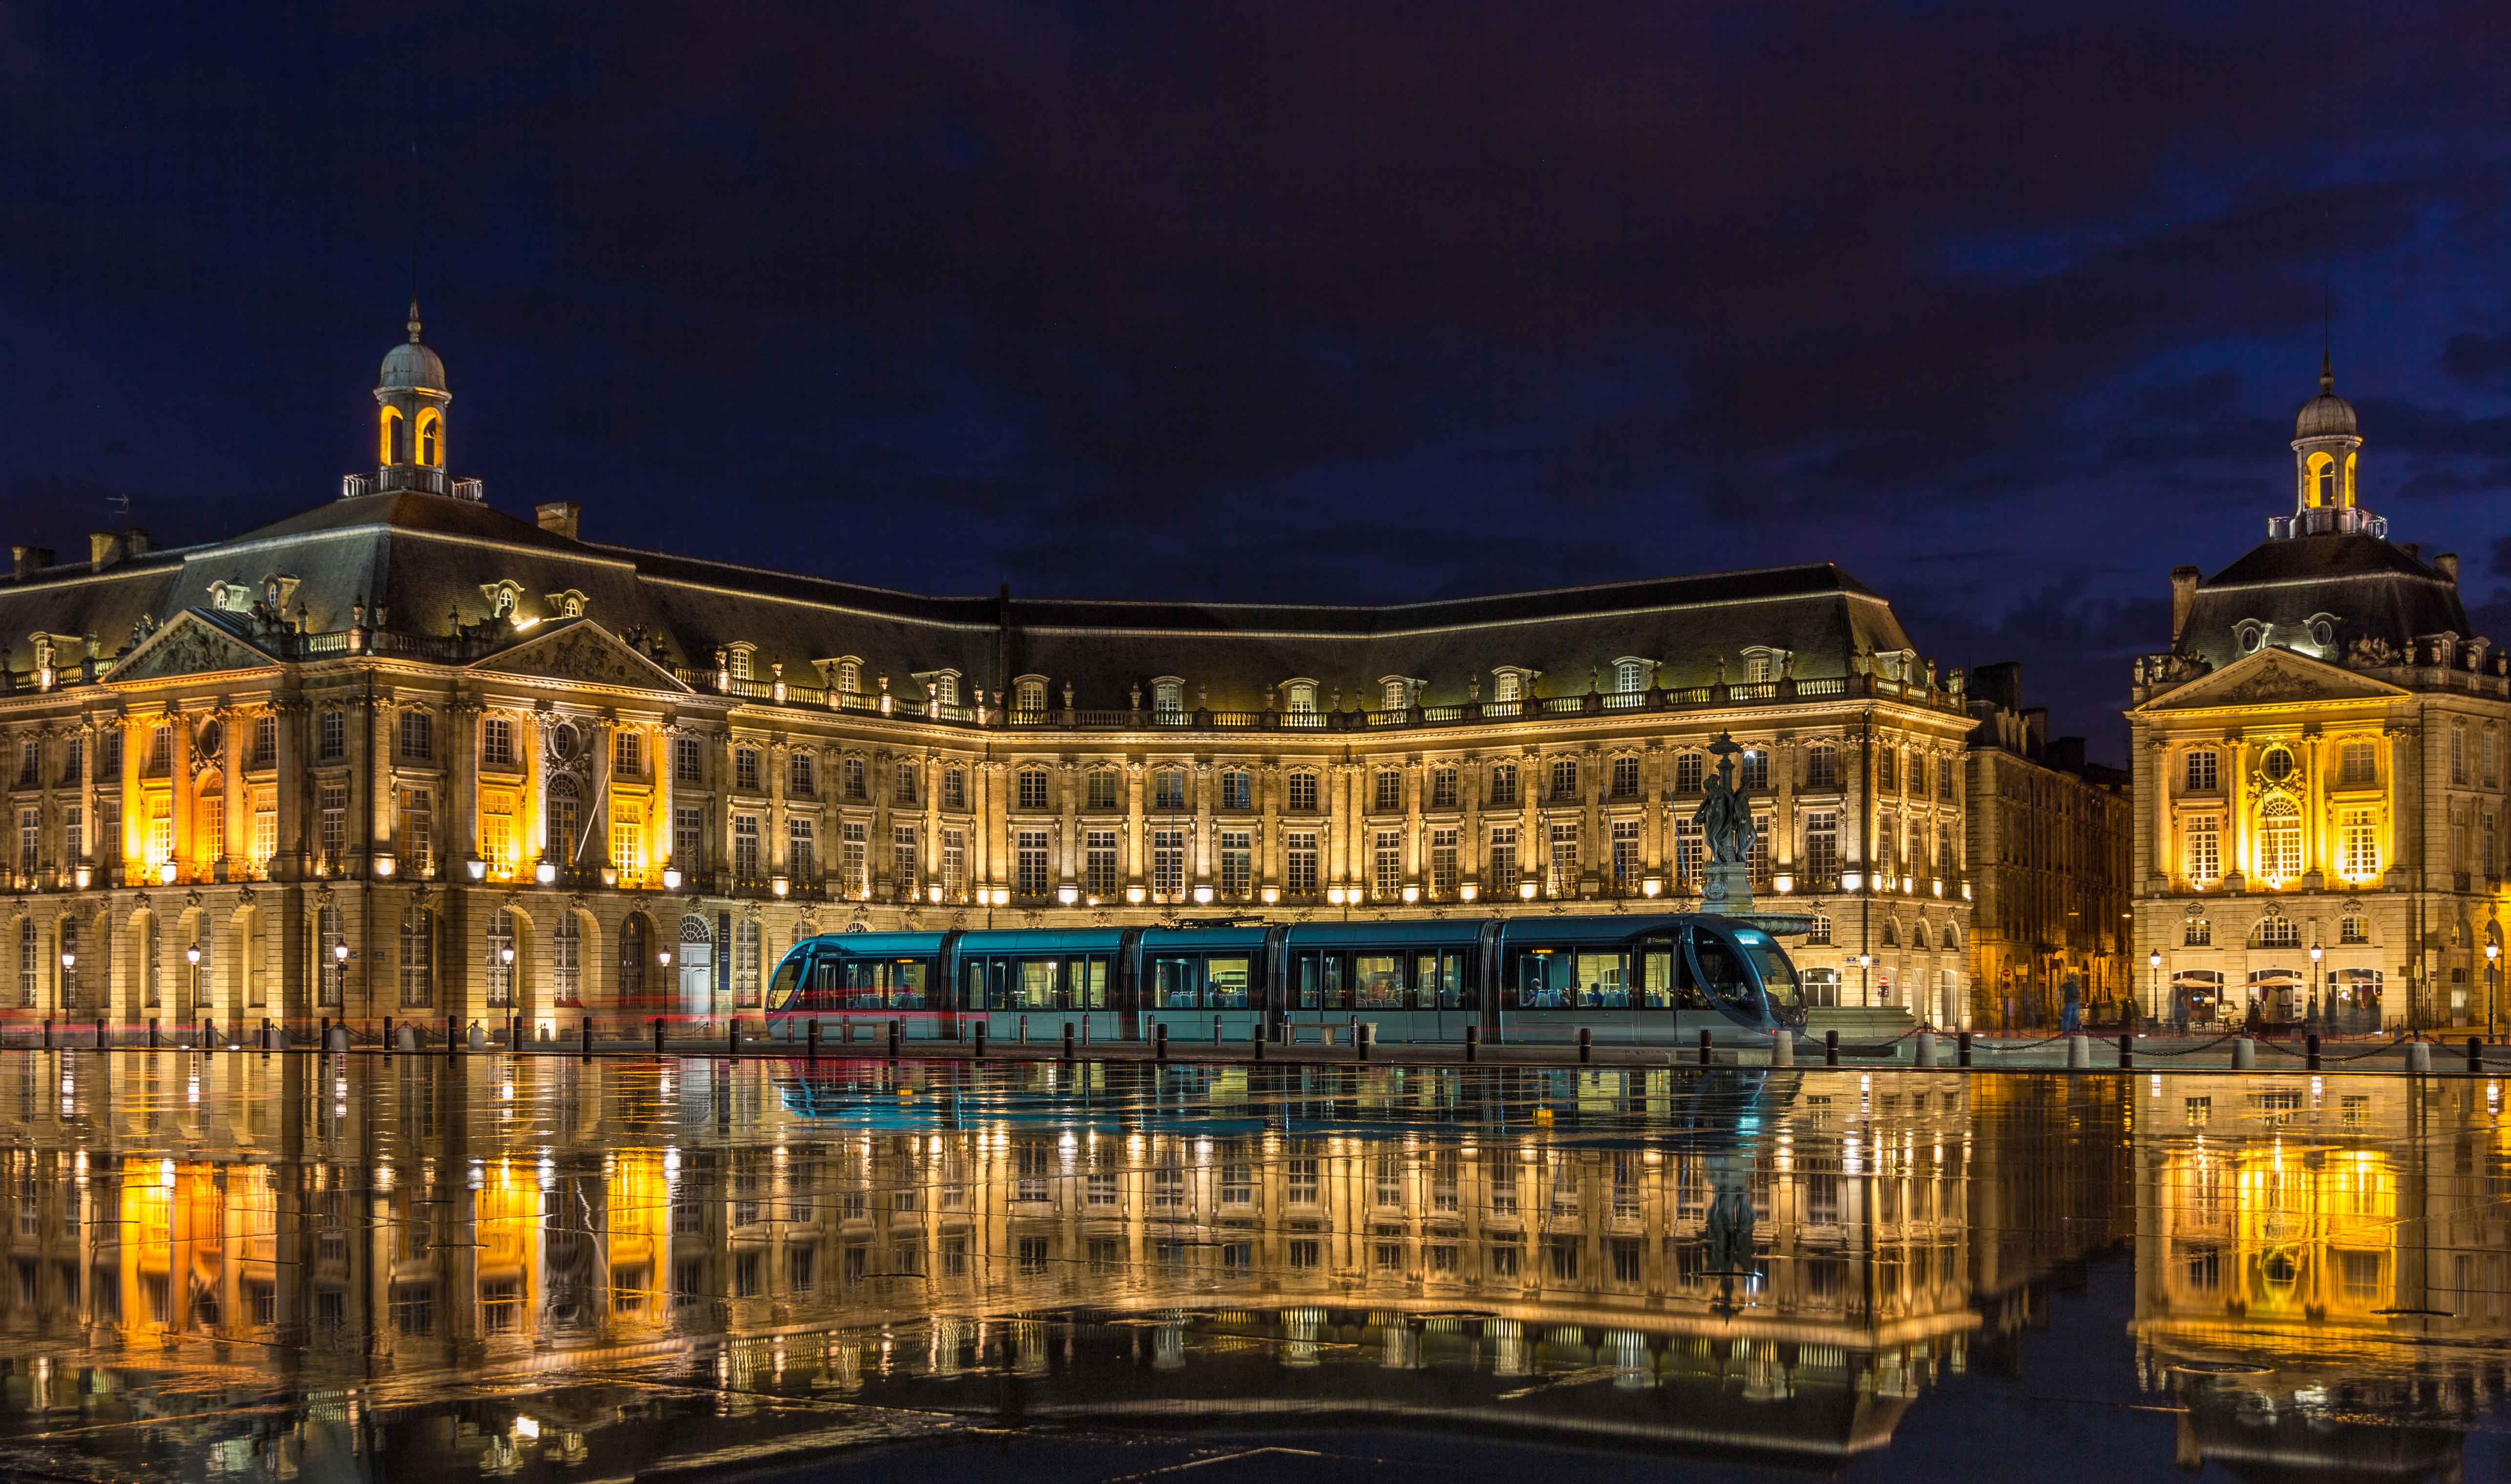 The ancient city of Bordeaux has been the largest urban area on the UNESCO World Heritage list since 2007. Since then, it's been voted best city in Europe, best city in the world, and the best gastronomic city in France.